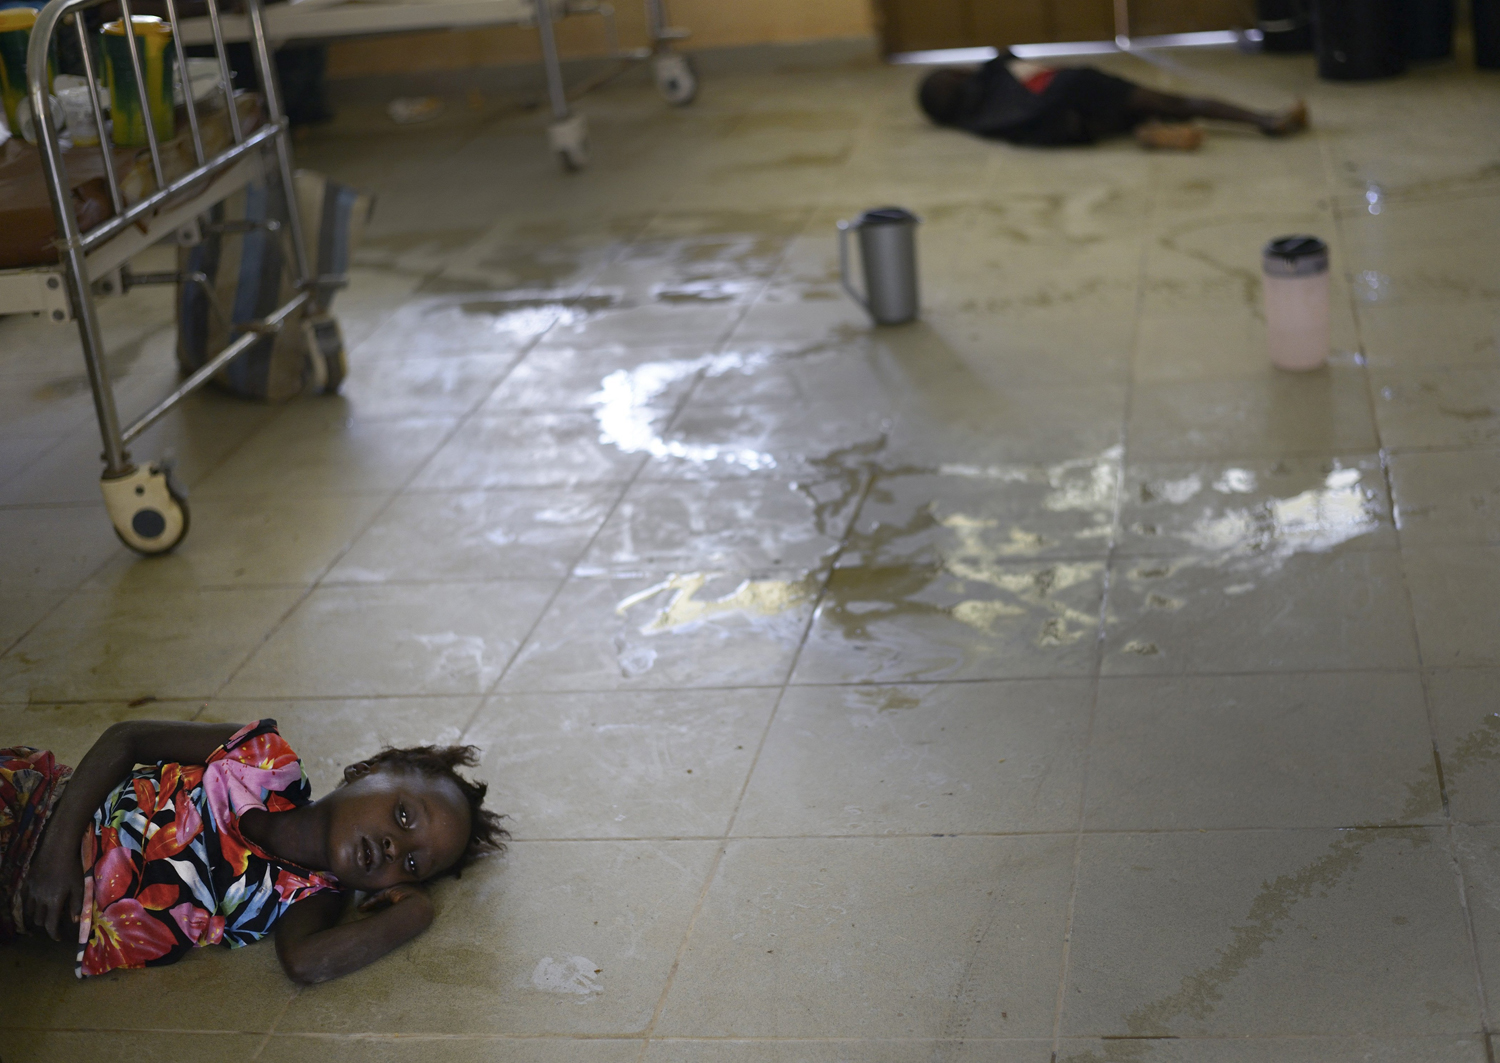 Mariattu Kanu, 4, who is suspected of being infected with Ebola, lies on the floor amid body fluids in a ward for Ebola victims at a hospital in Makeni, Sierra Leone, Sept. 27, 2014.